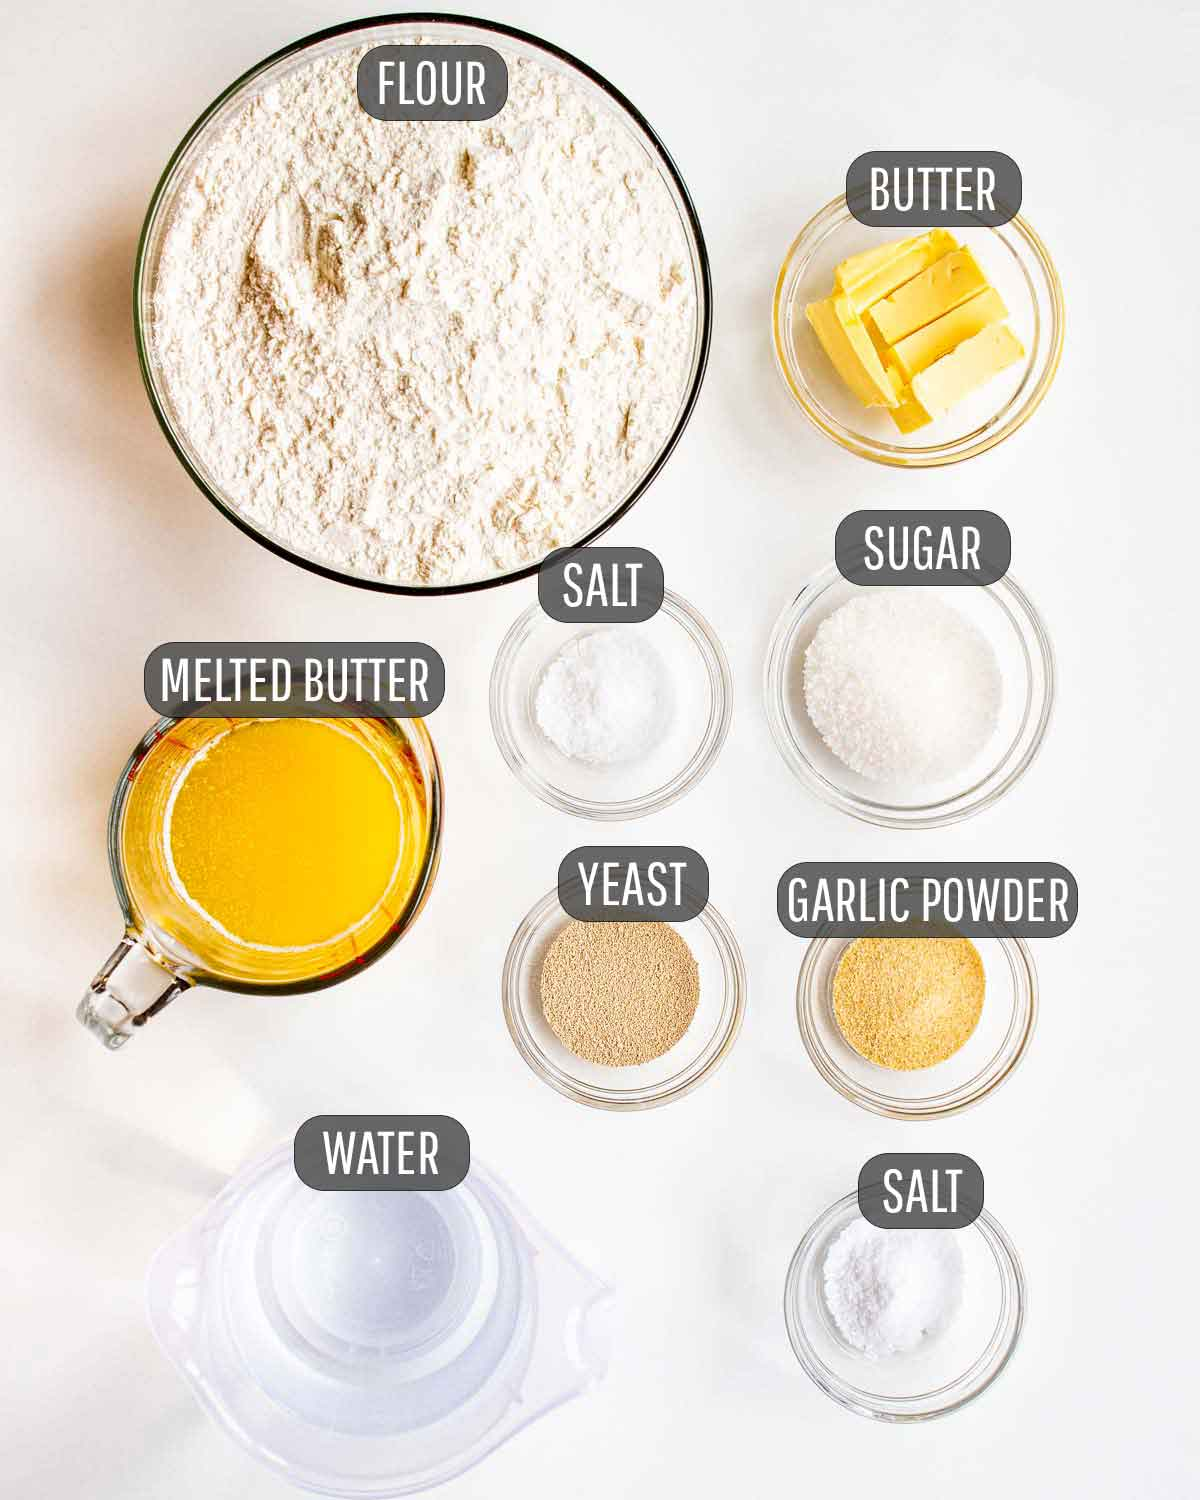 overhead shot of all ingredients needed to make breadsticks.